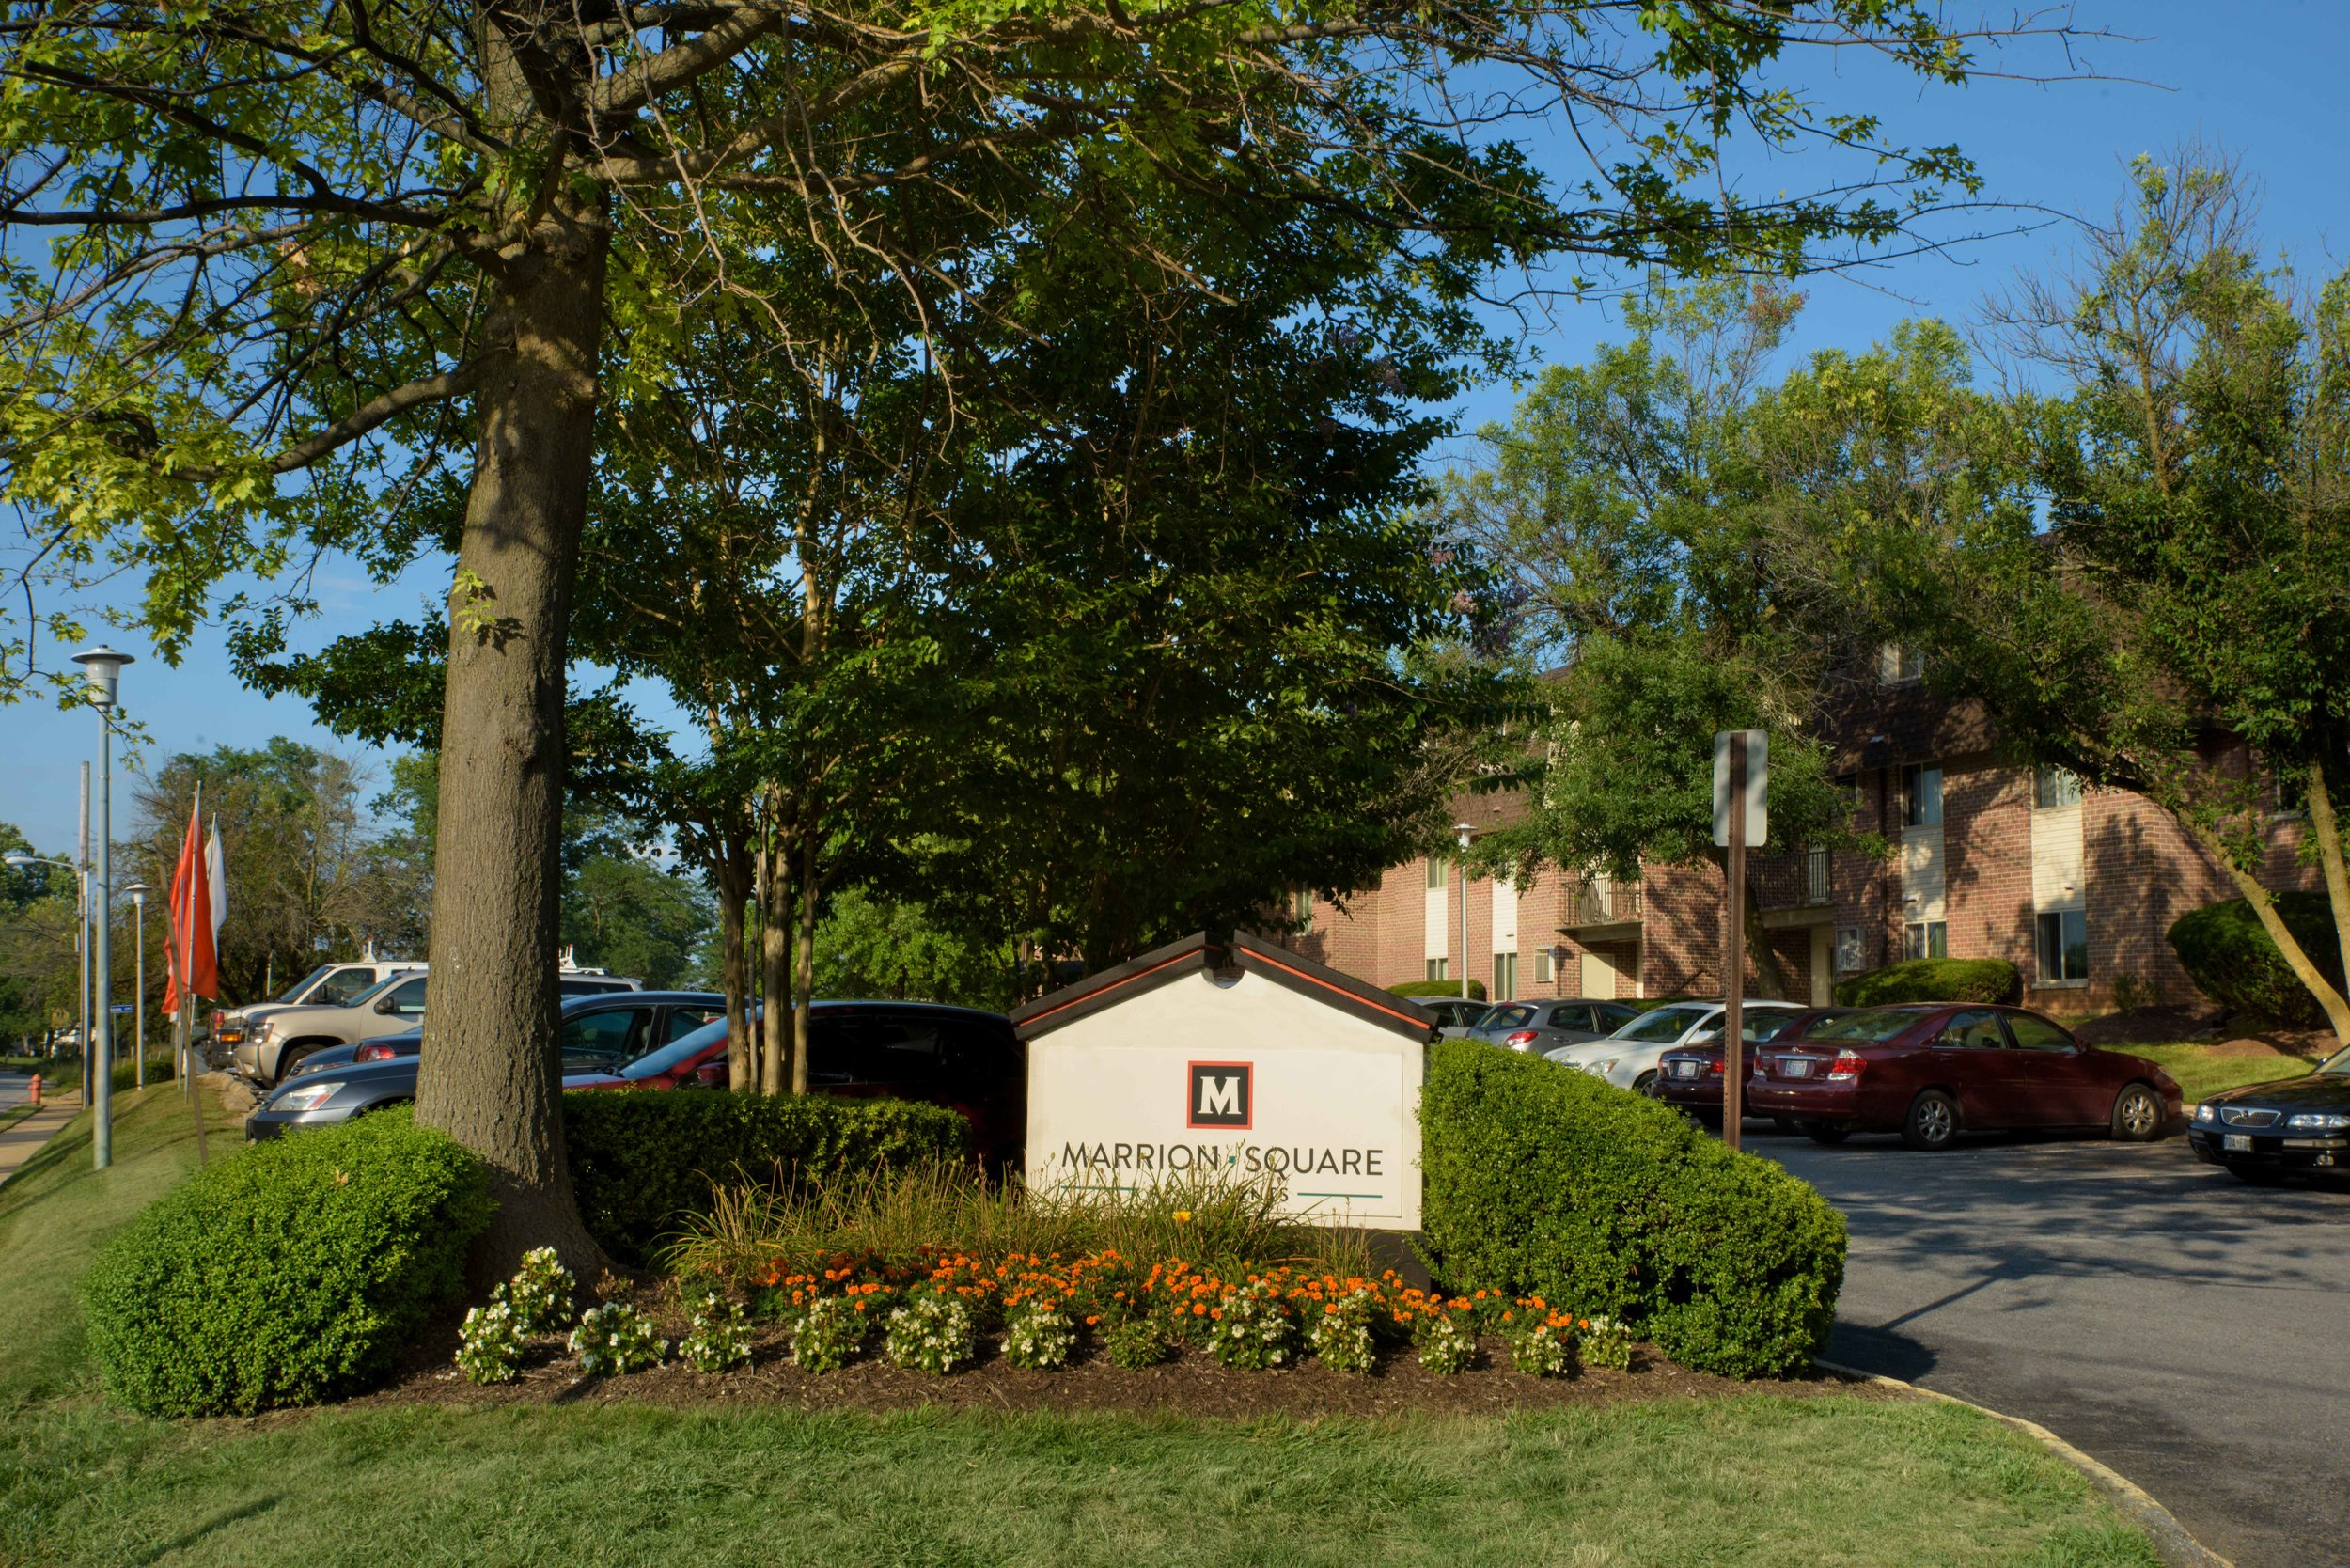 Marrion Square Apartments in Pikesville, MD